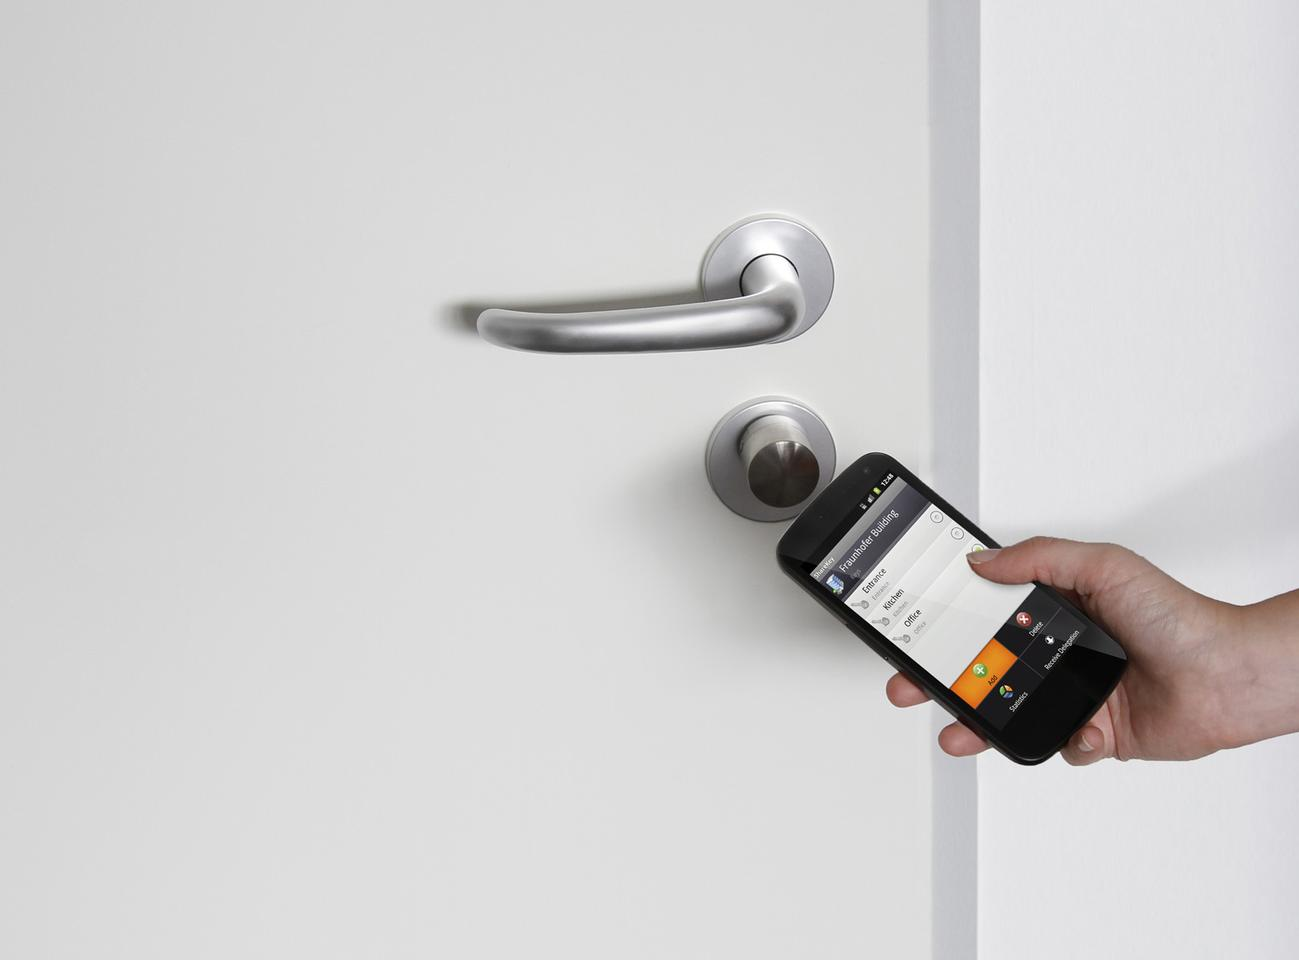 The ShareKey app uses NFC to lock and unlock doors (Photo: Fraunhofer SIT)